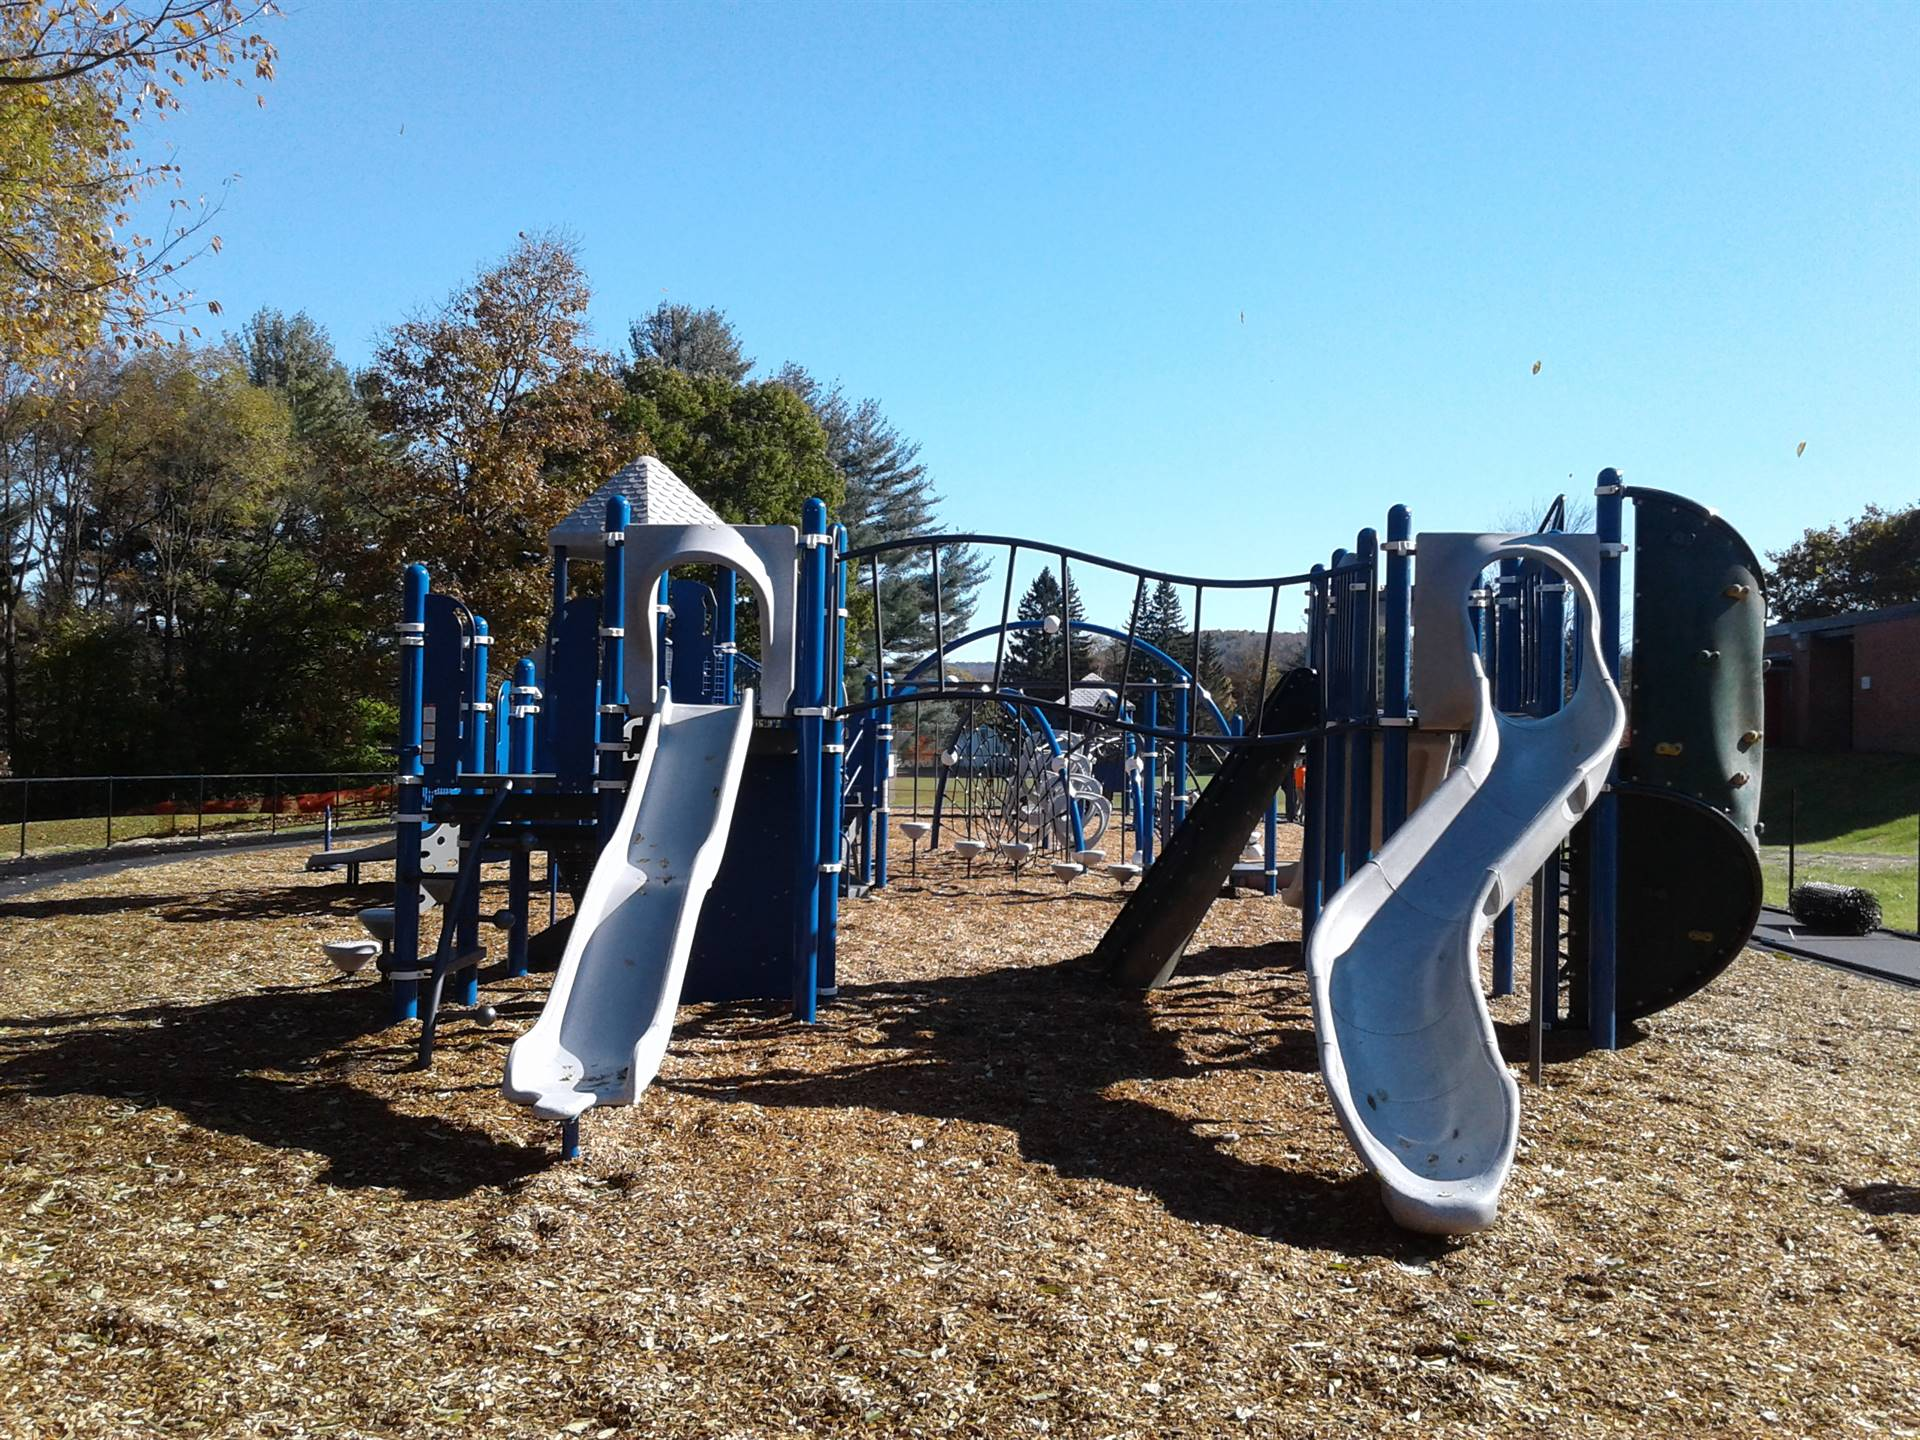 New Greenlawn Playground - Climbing apparatus and slides